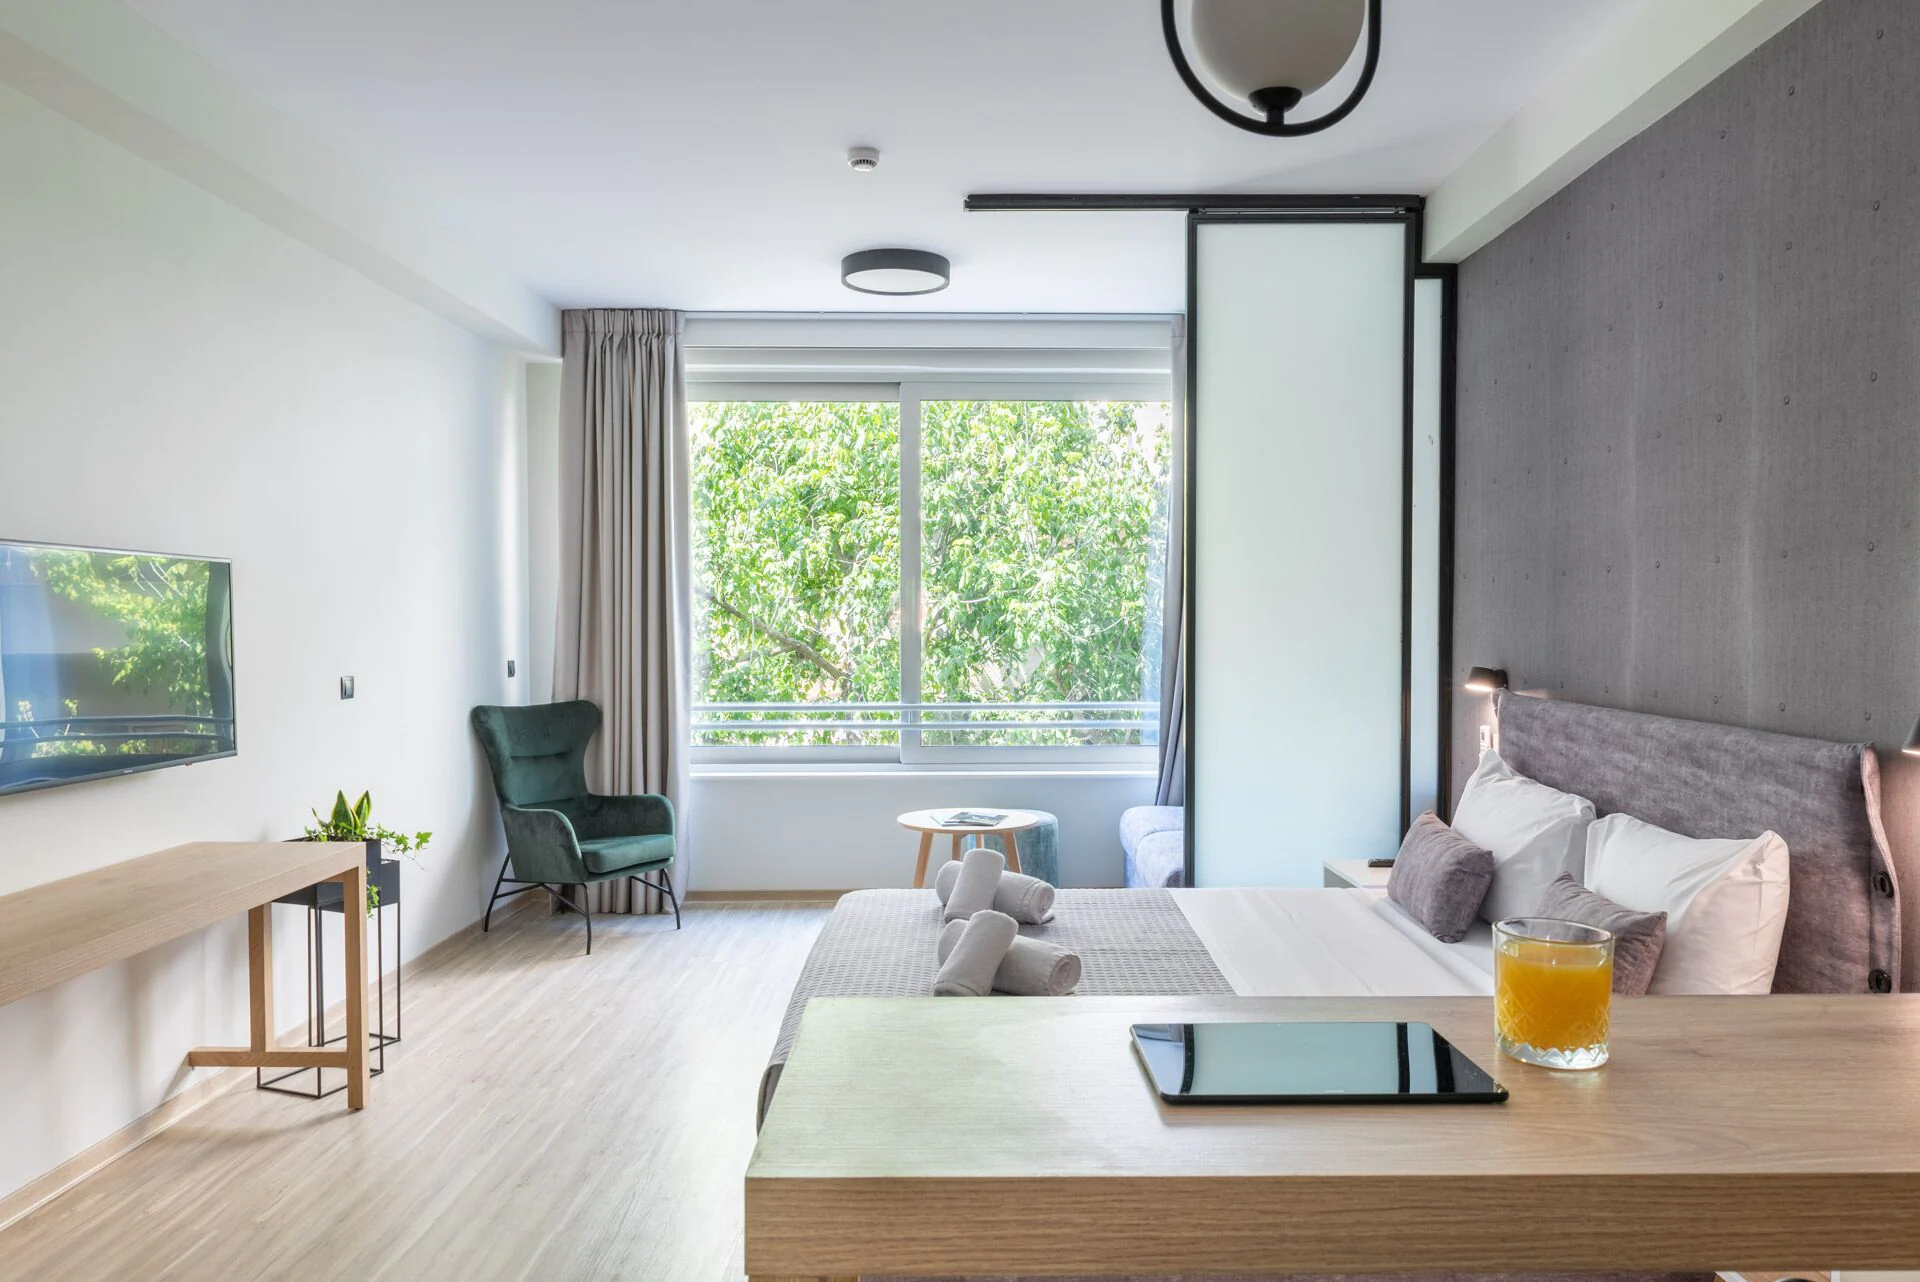 The Athens Green Suites